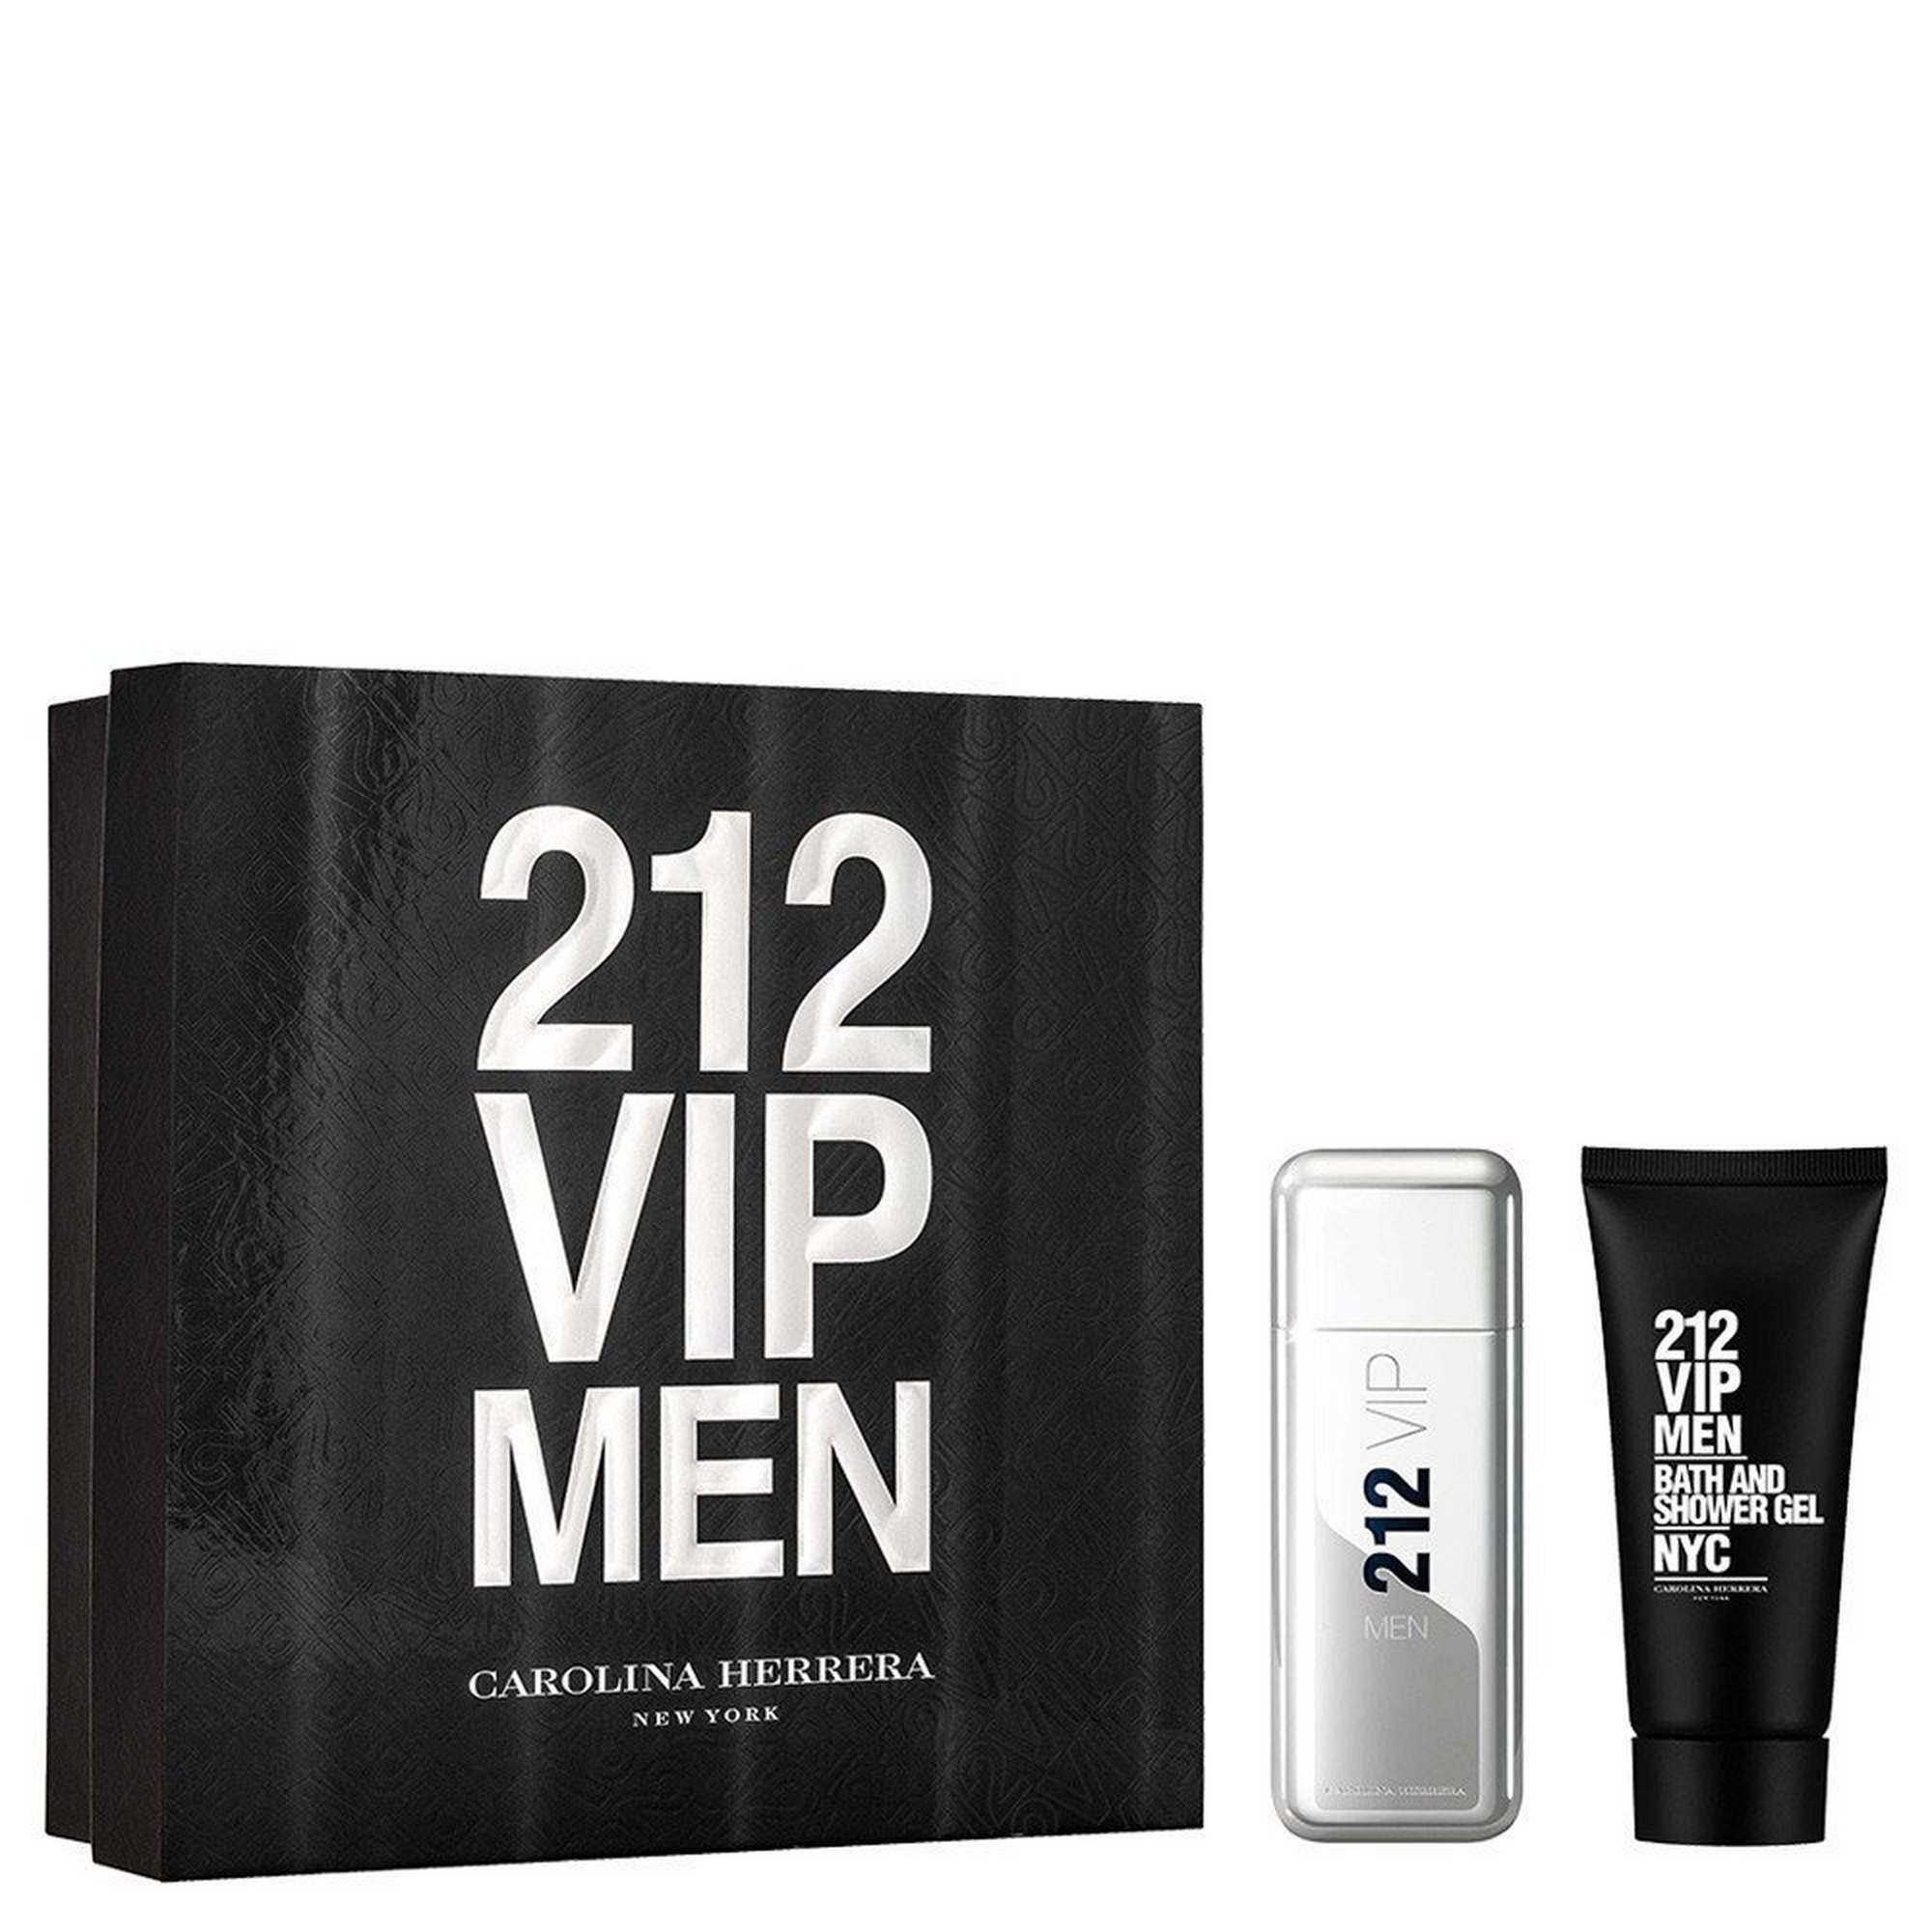 Image of Carolina Herrera 212 VIP Men 100ml Gift Set